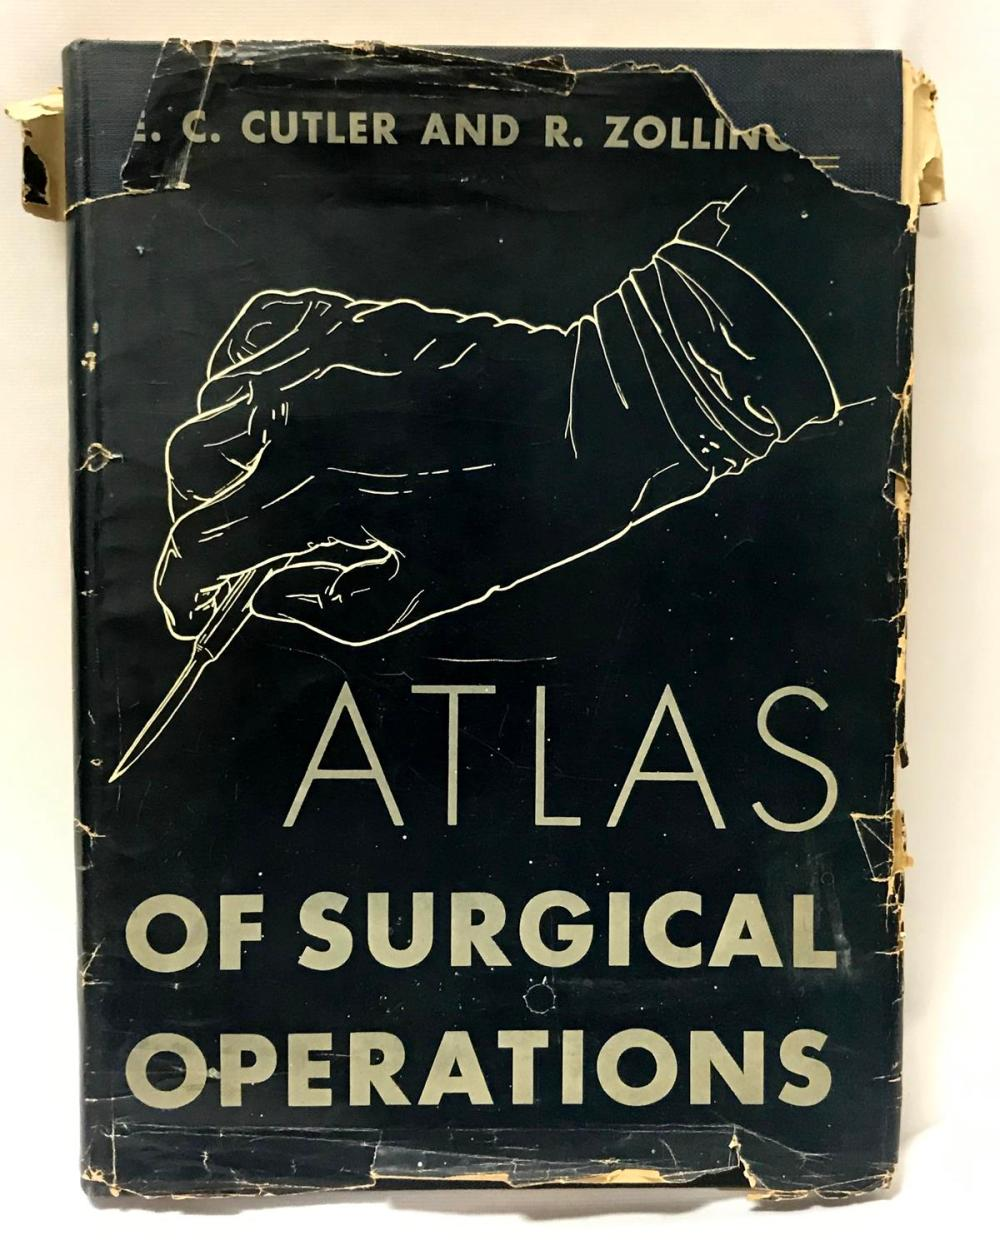 1939 Atlas of Surgical Operations by Elliot C. Cutler FIRST EDITION